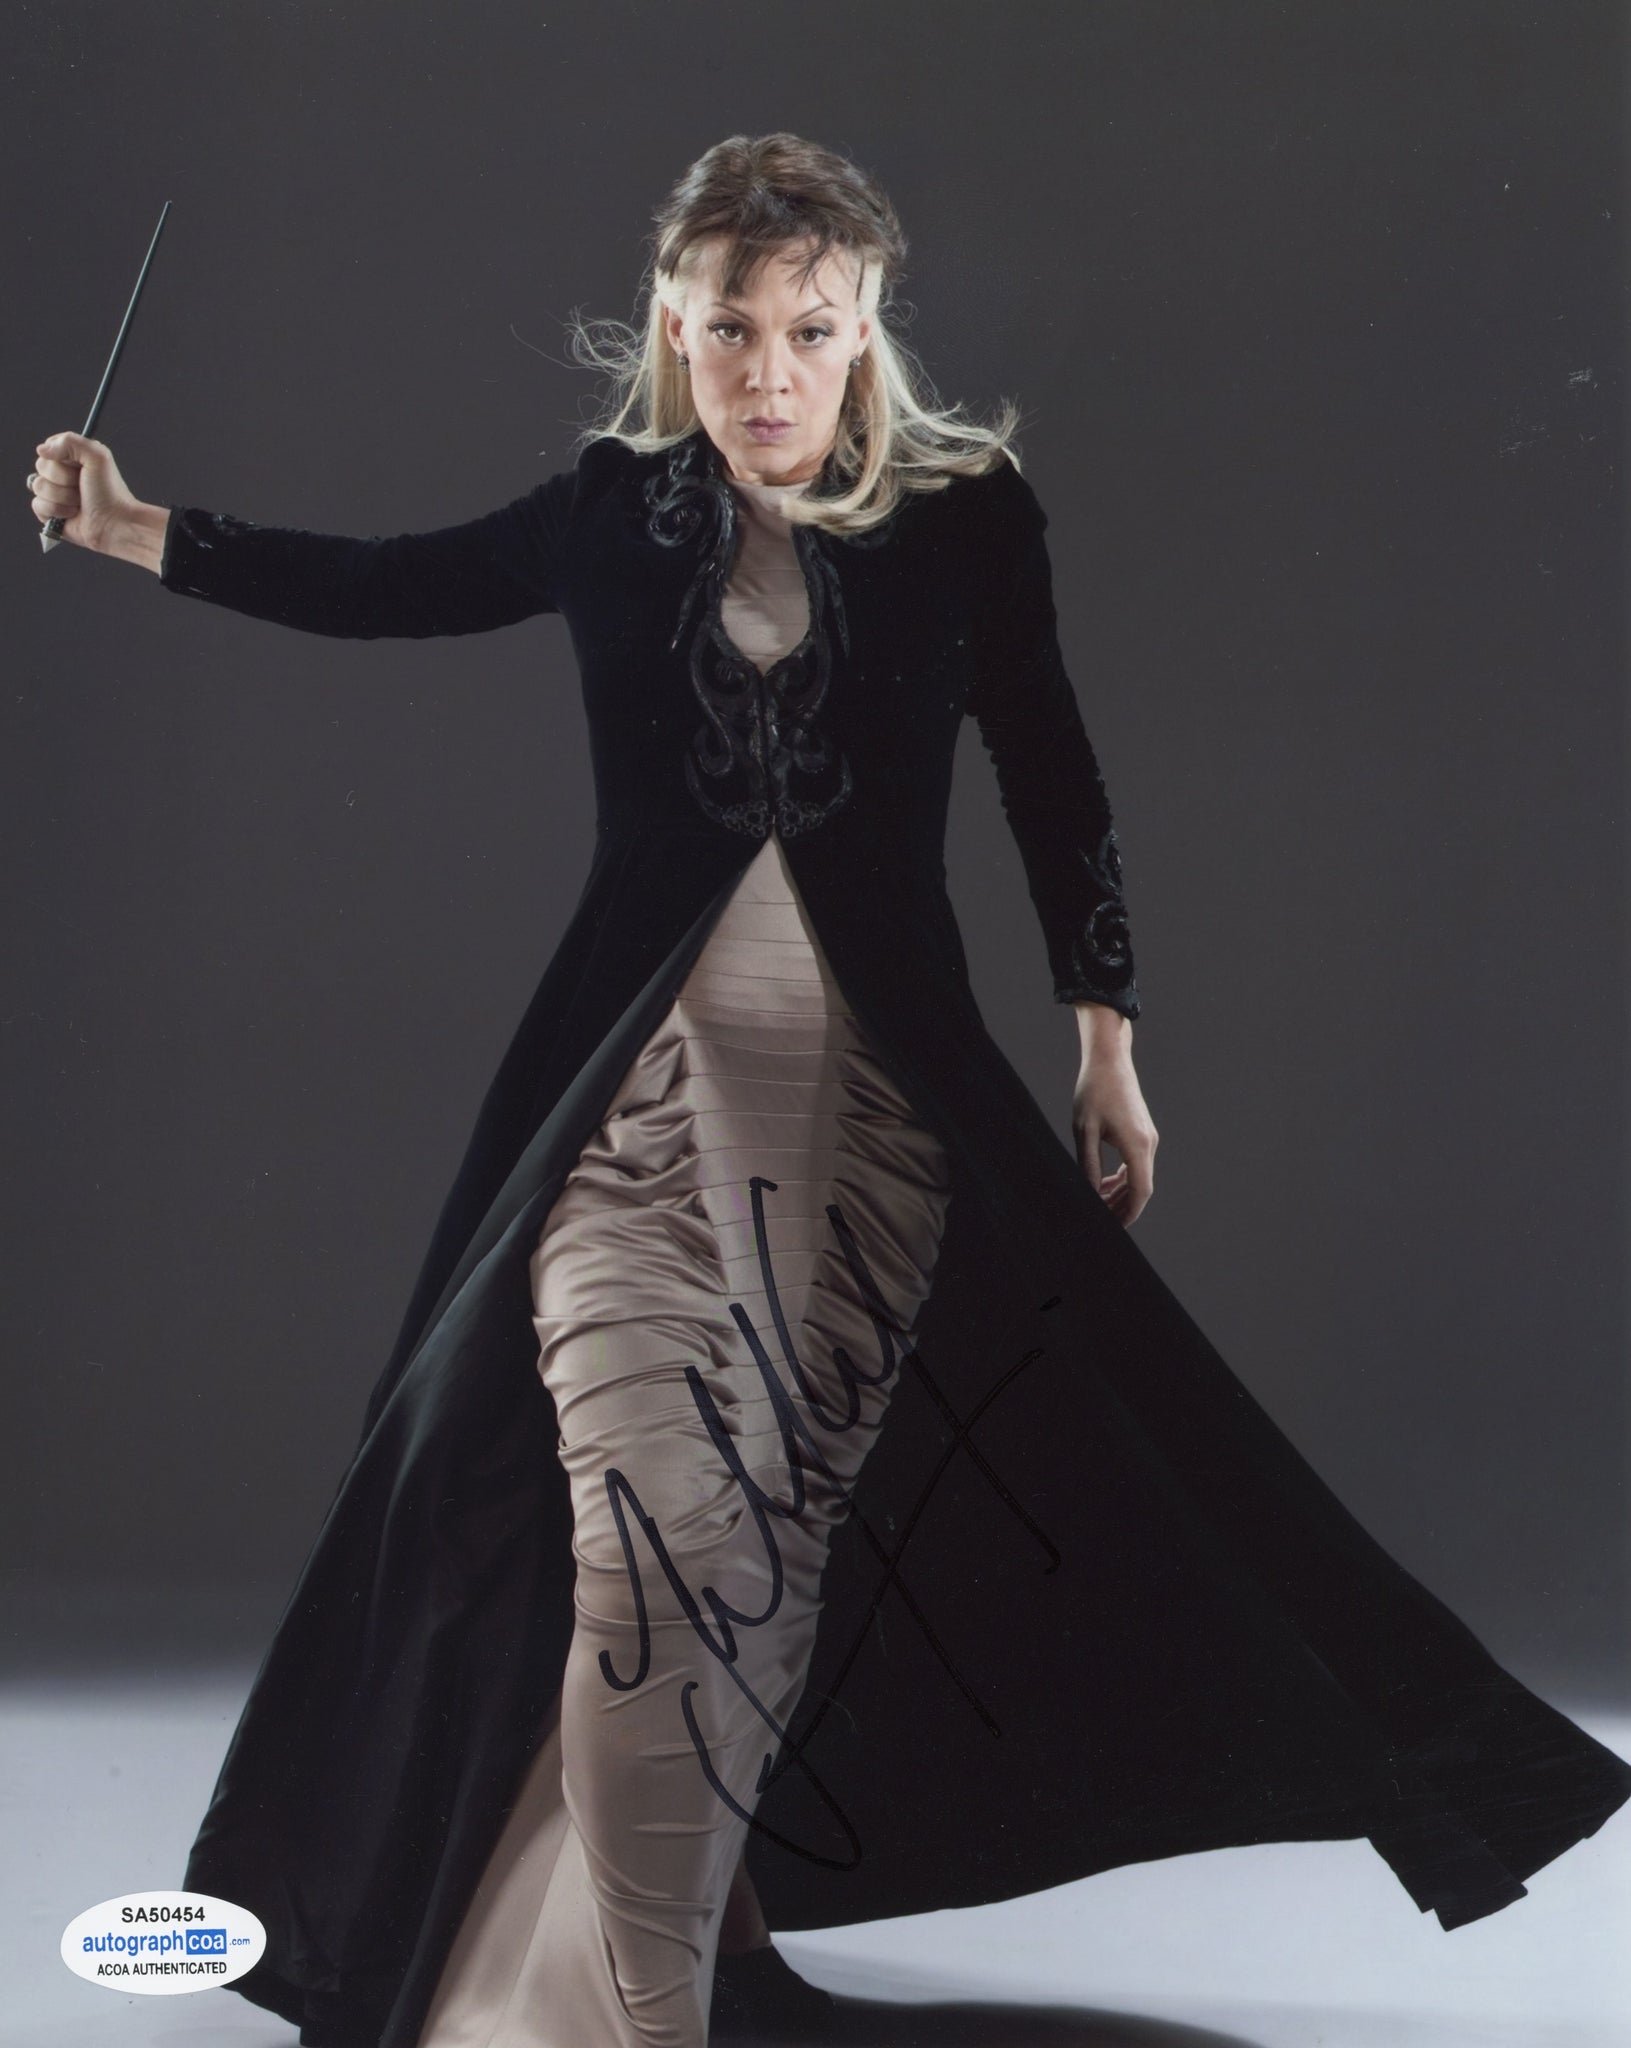 Helen McCrory Harry Potter Signed Autograph 8x10 Photo ACOA